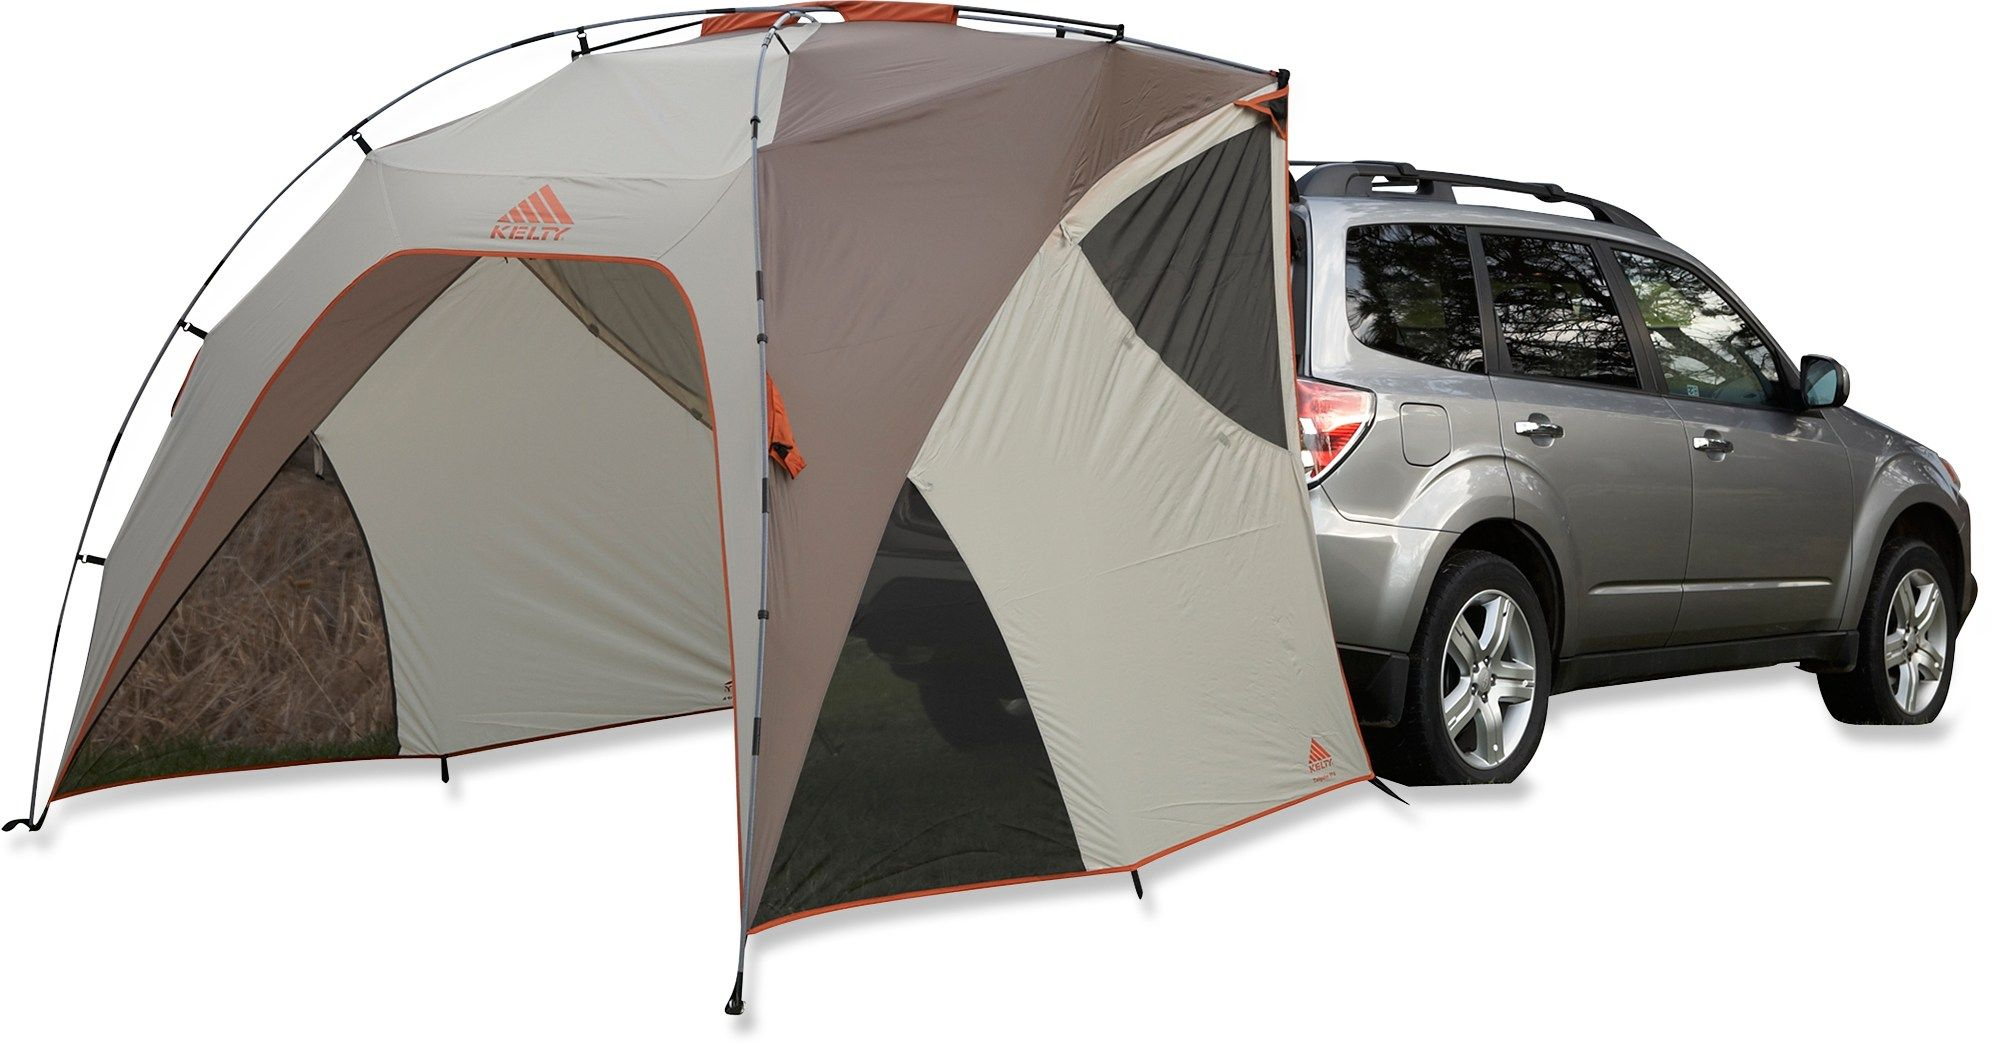 Kelty Tailgater IPA Shelter - Free Shipping at REI.com  sc 1 st  Pinterest & Kelty Tailgater IPA Shelter - Free Shipping at REI.com   REI ...